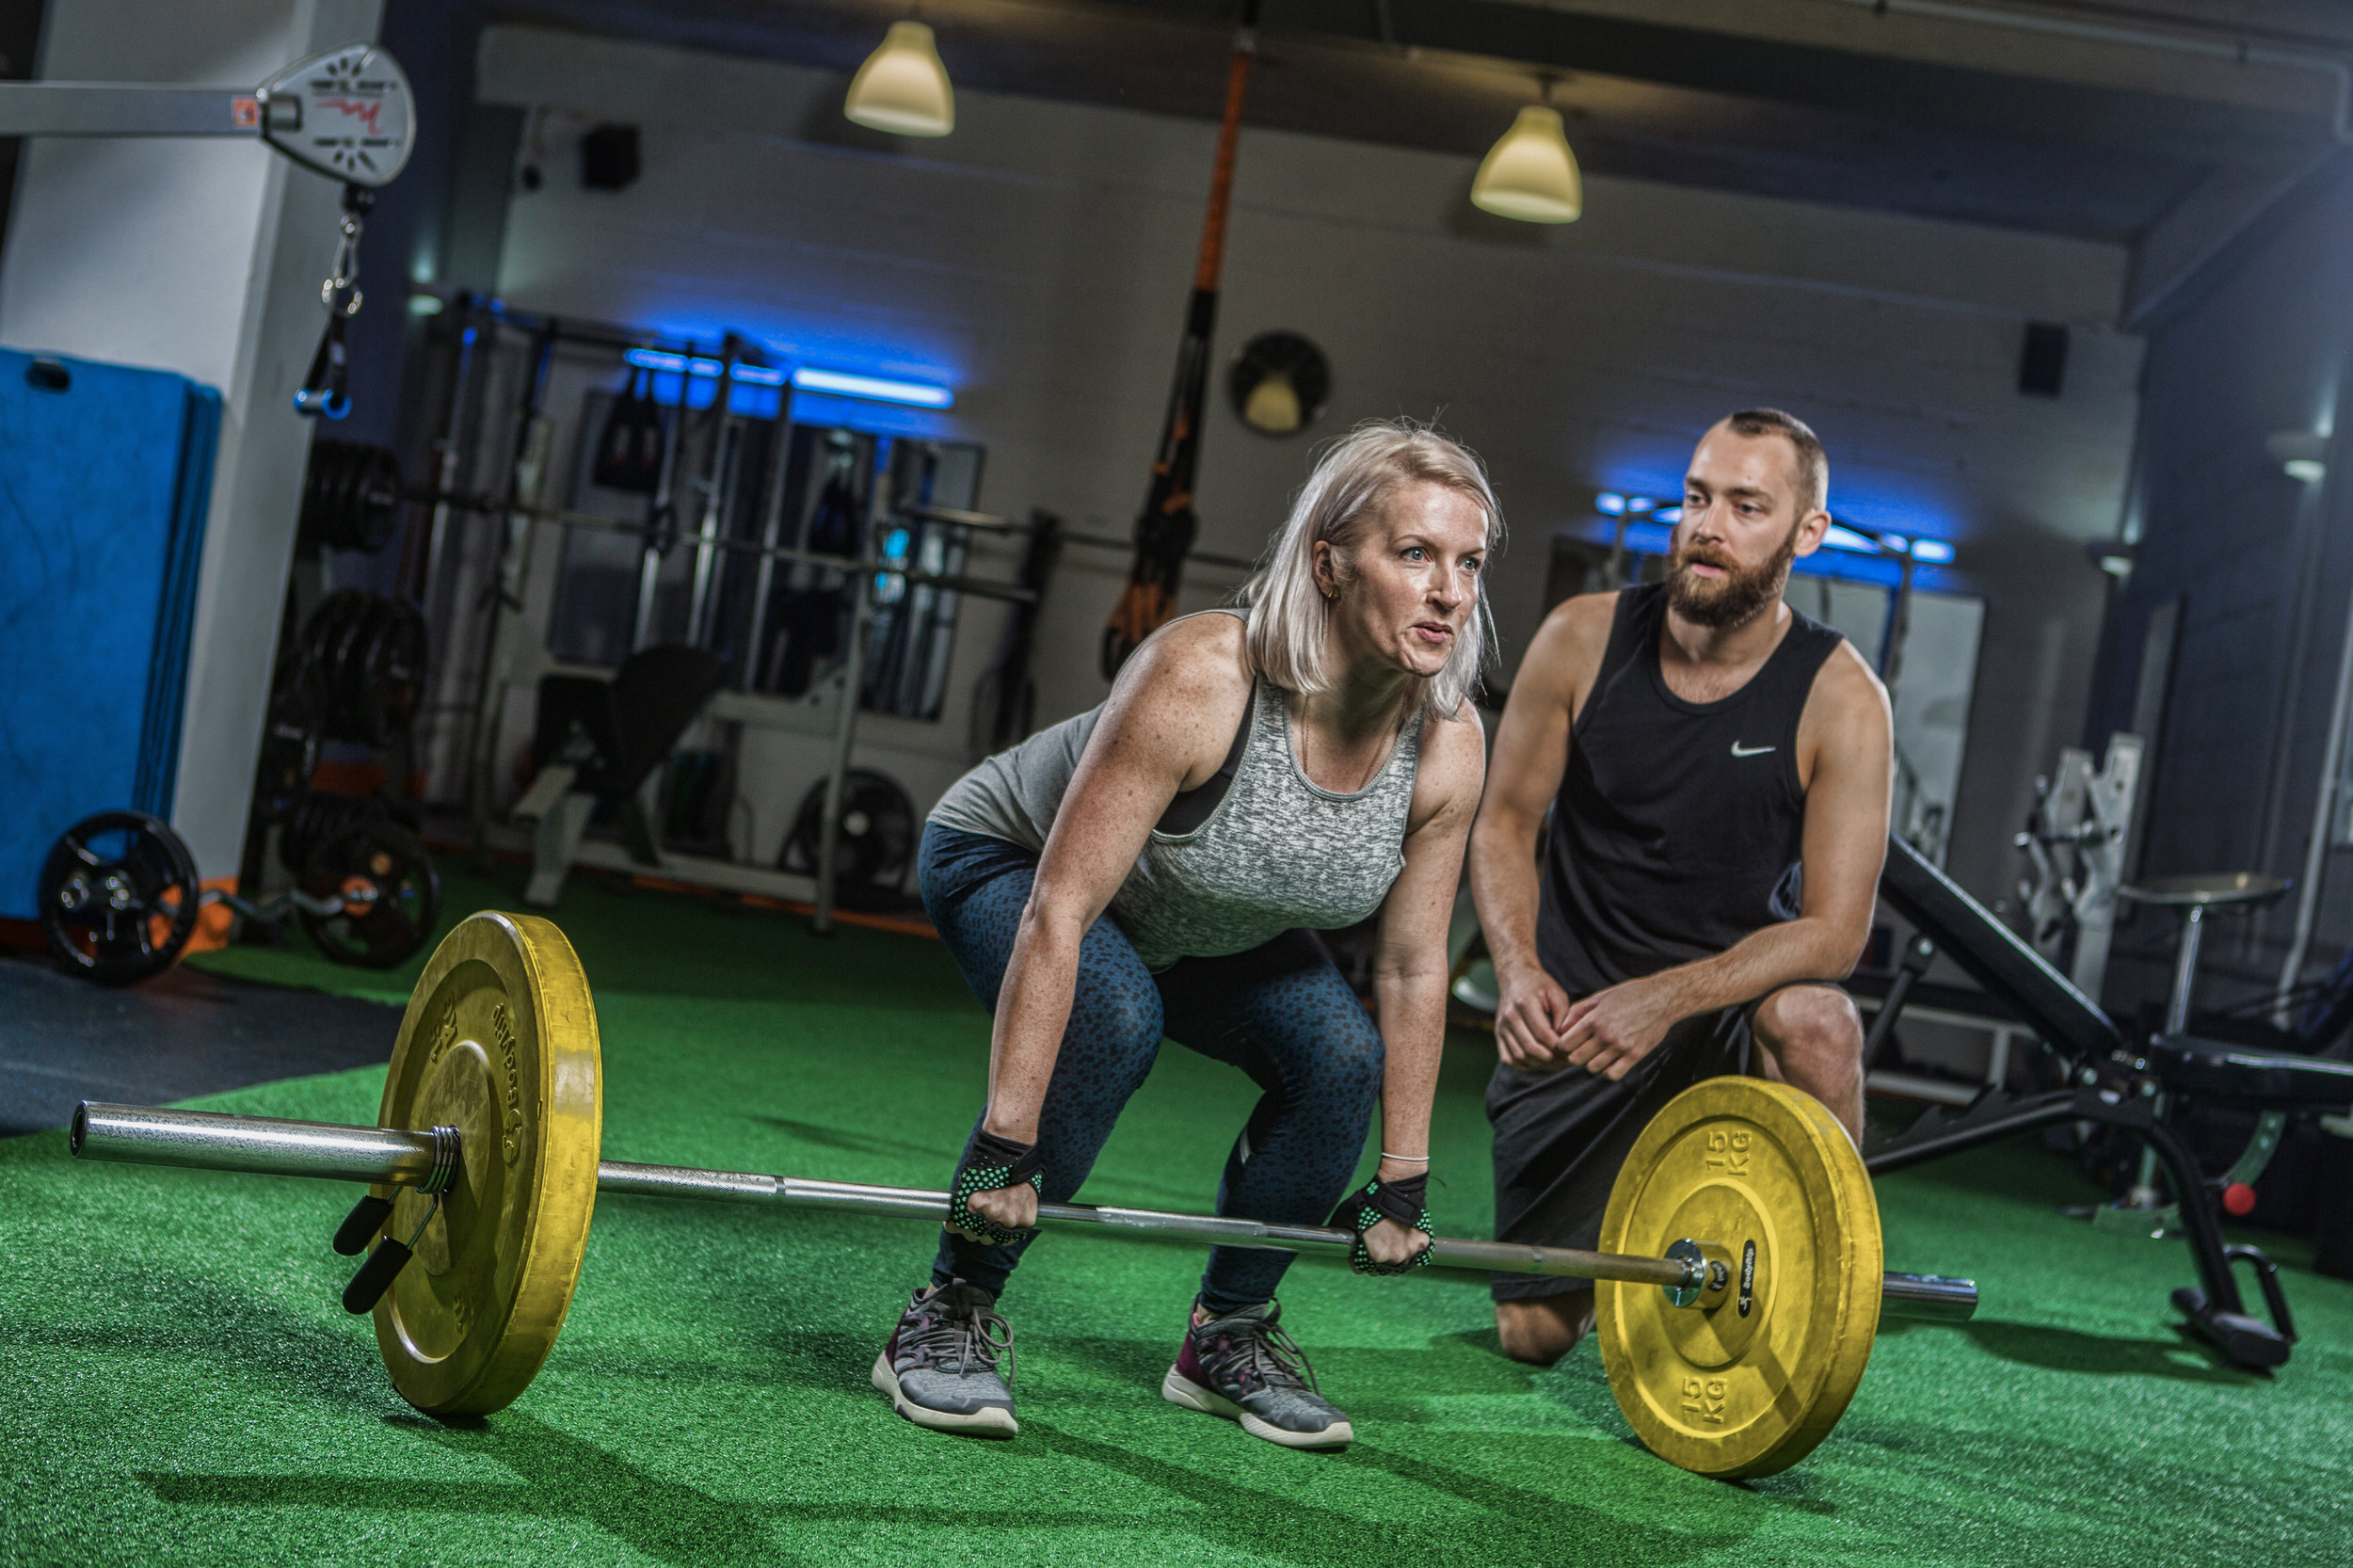 The dead lift is the boss of strength building lifts!